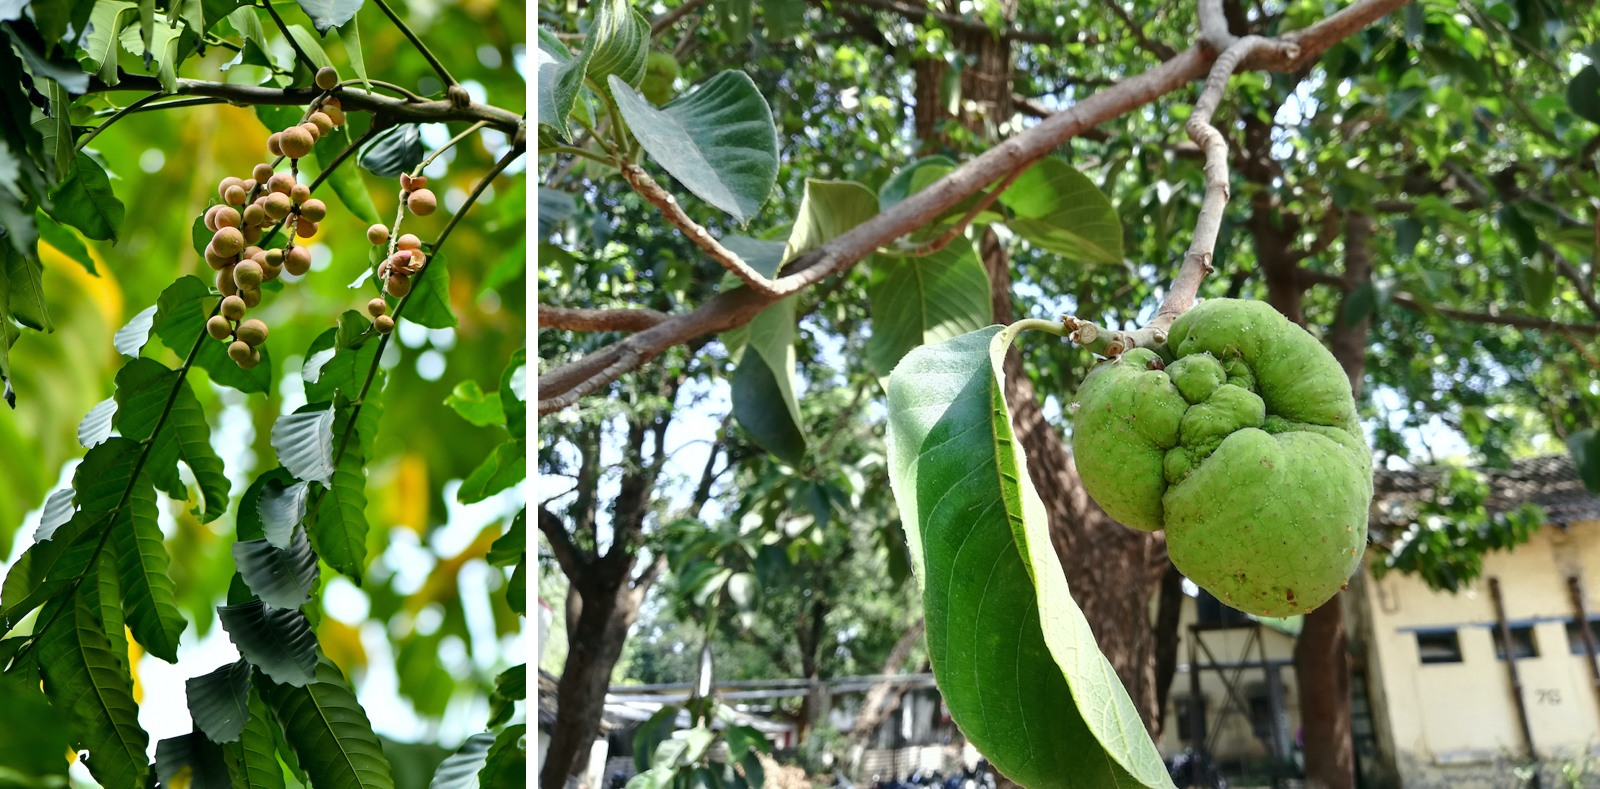 The monkey jack fruit is green when unripe. The sweet and sour ripe fruit, which is yellowish tinged with pink, has many nutritional and medicinal benefits. Photos: mustbeyou/Shutterstock (left) and Snehalata/Shutterstock (right)